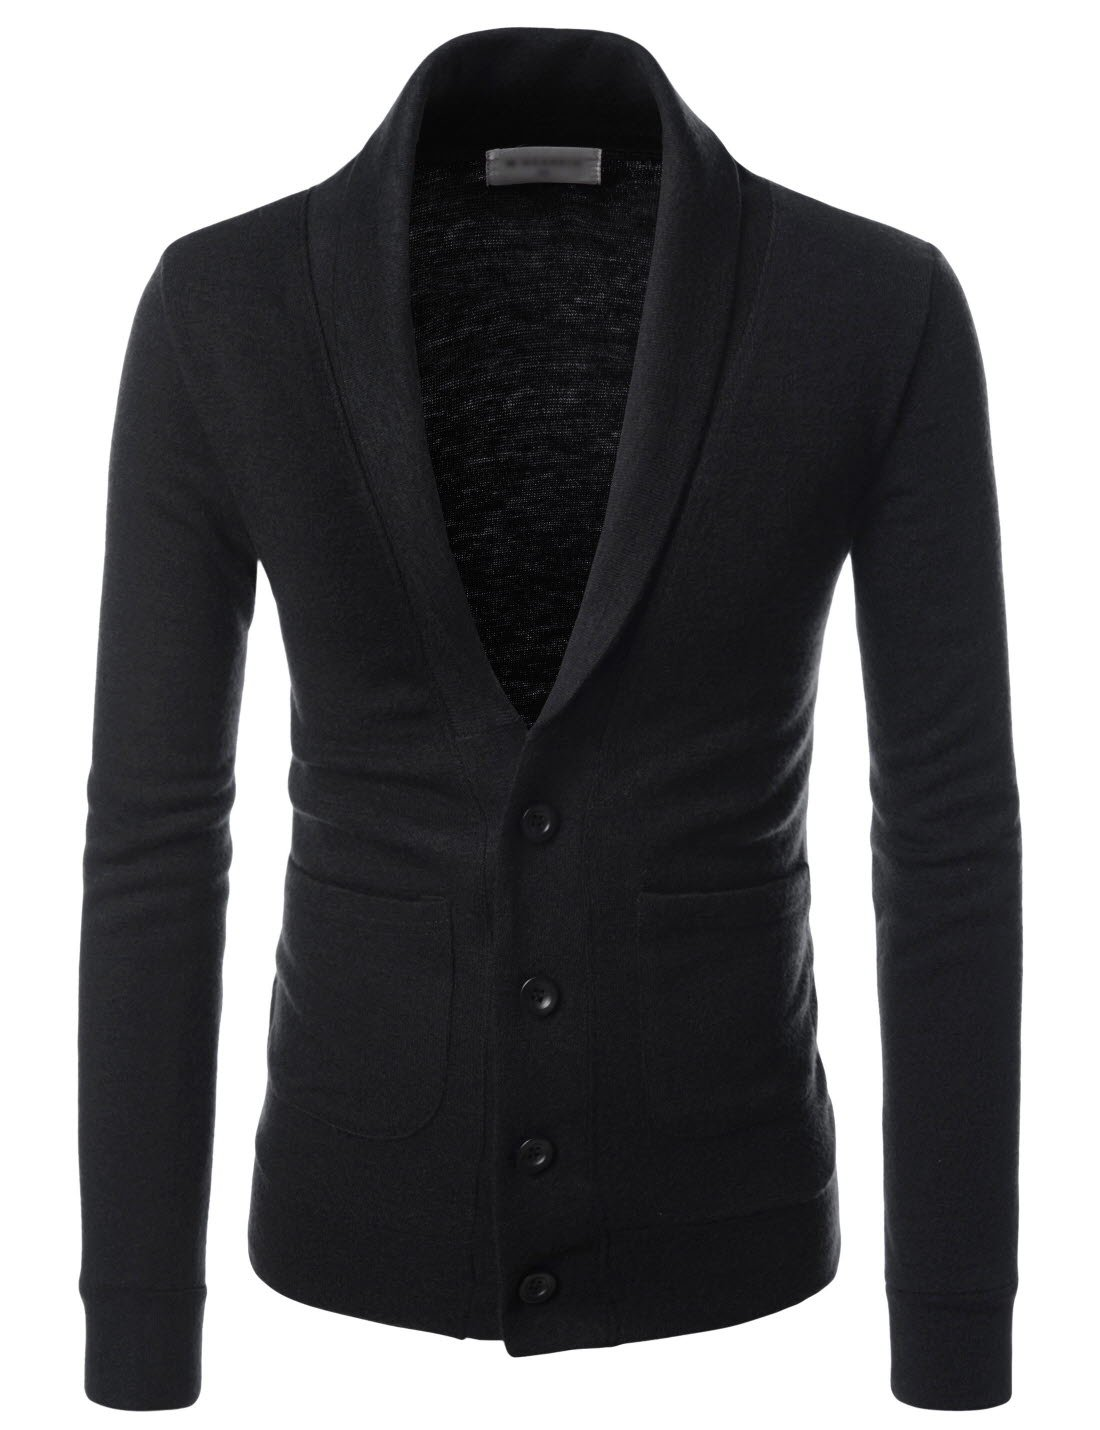 TheLees (NKCD132) Shawl Collar Basic Knit Casual Cardigan Sweaters BLACK US XXXL(Tag size 3XL)